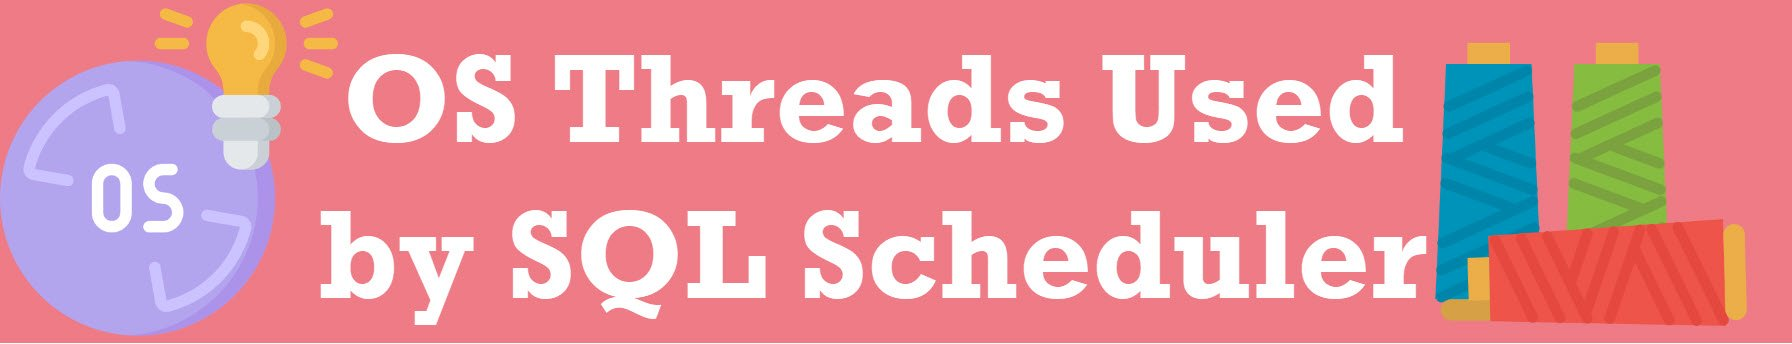 SQL SERVER – OS Threads Used by SQL Scheduler